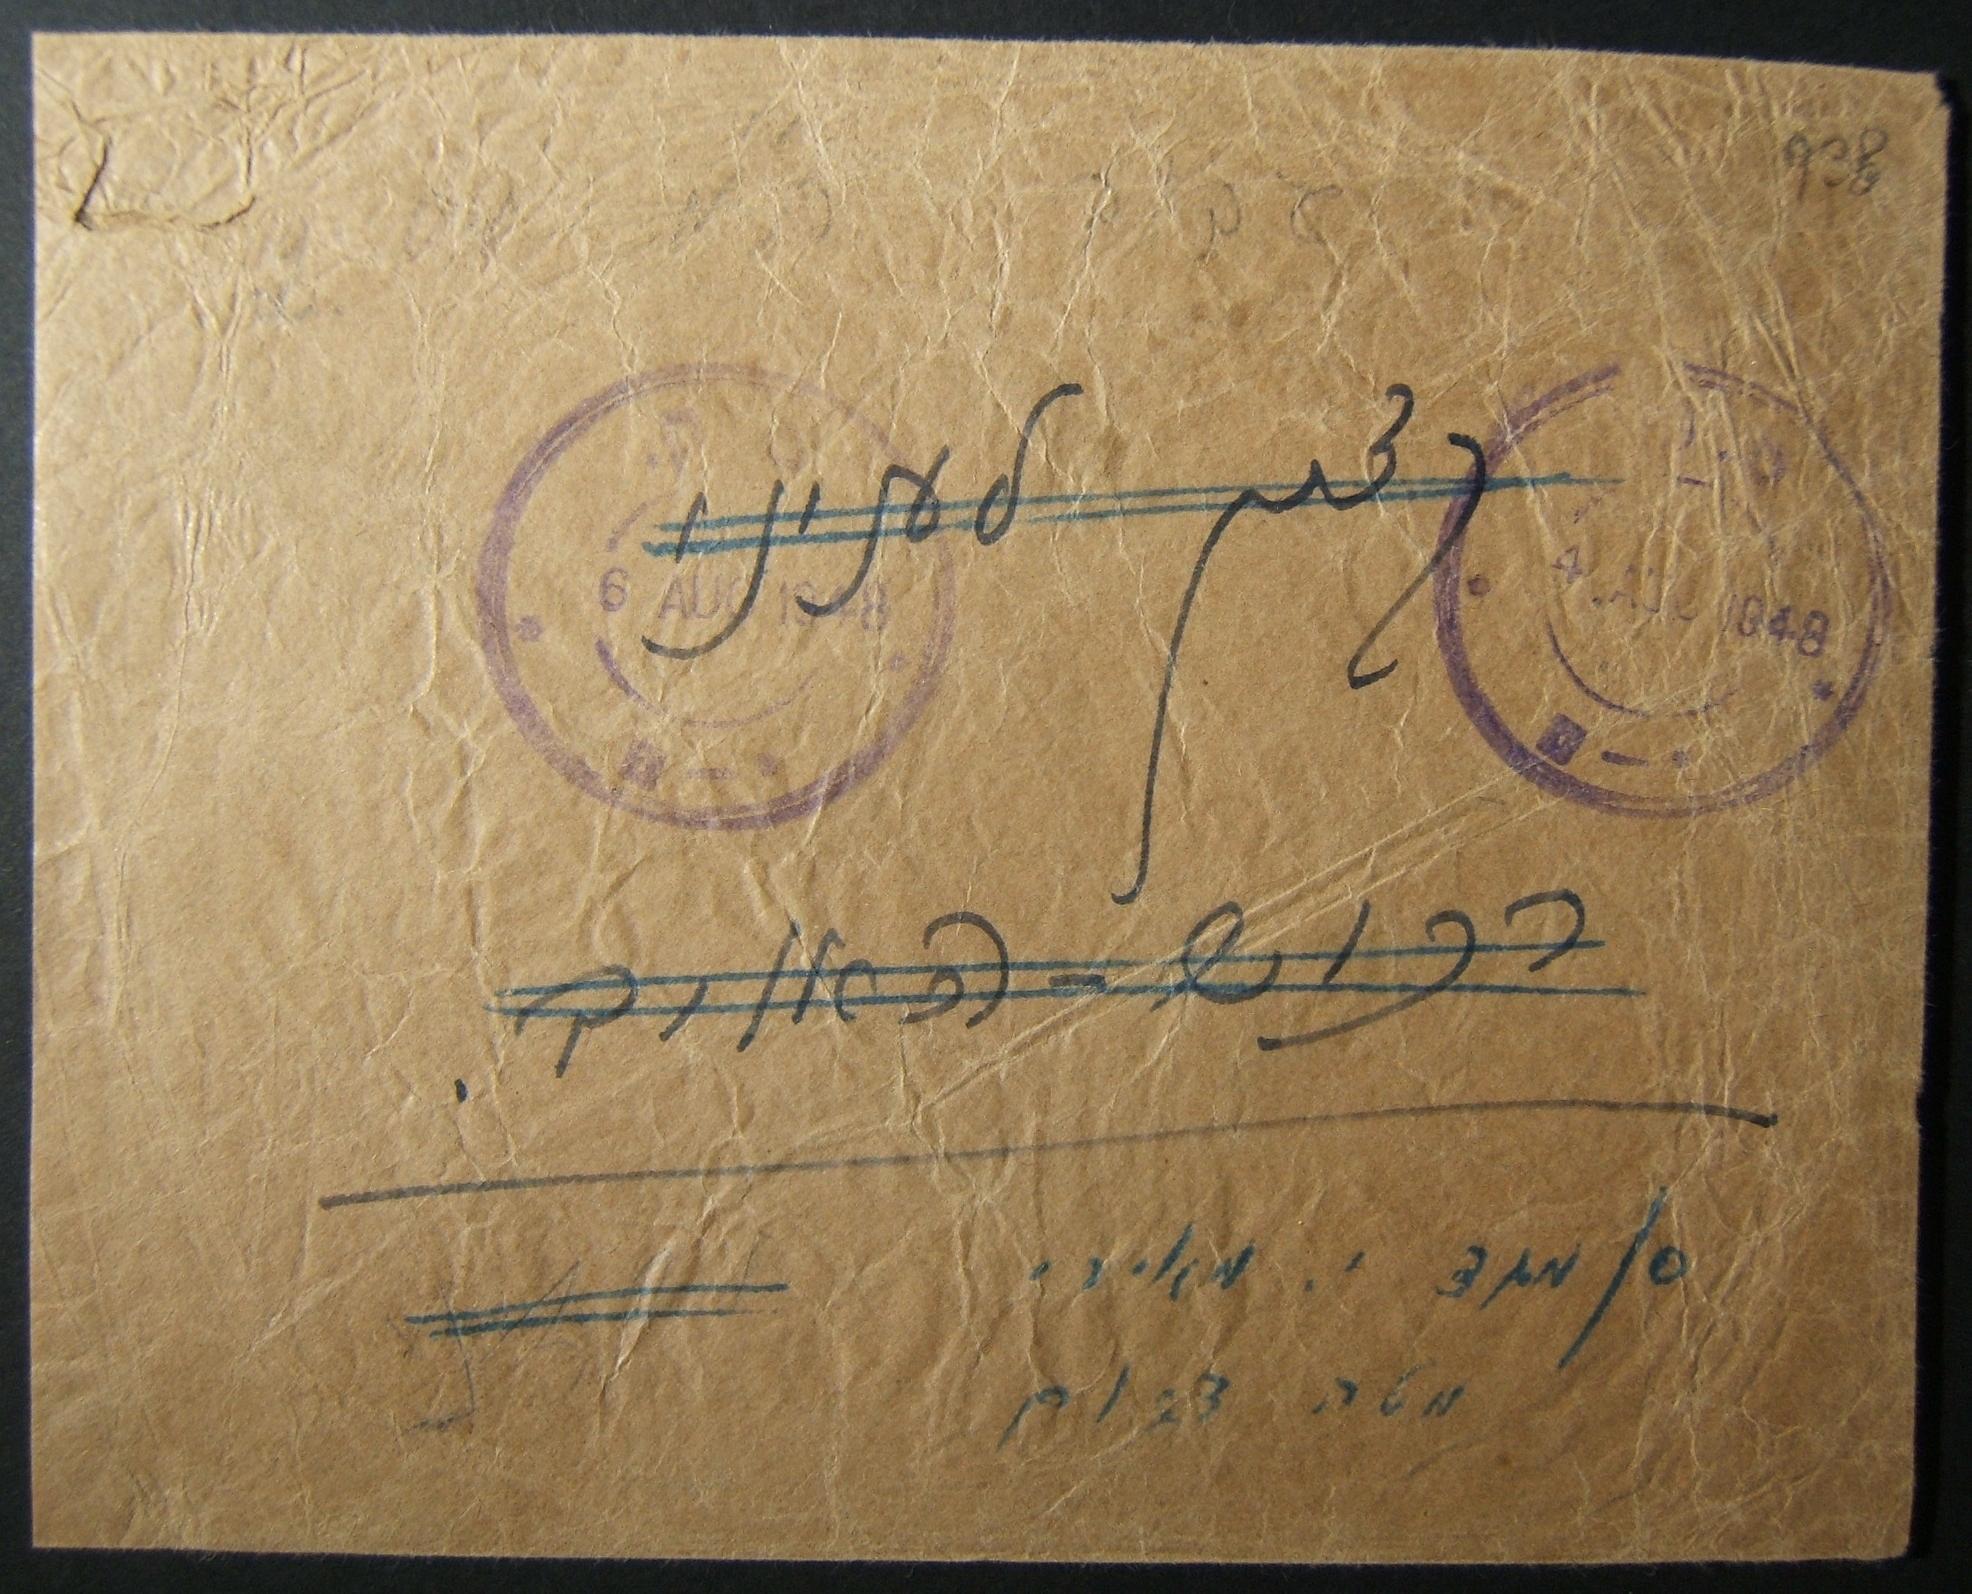 4 Aug 1948 Misrad Kesher Jerusalem Signals Corp military mail to Air Force unit